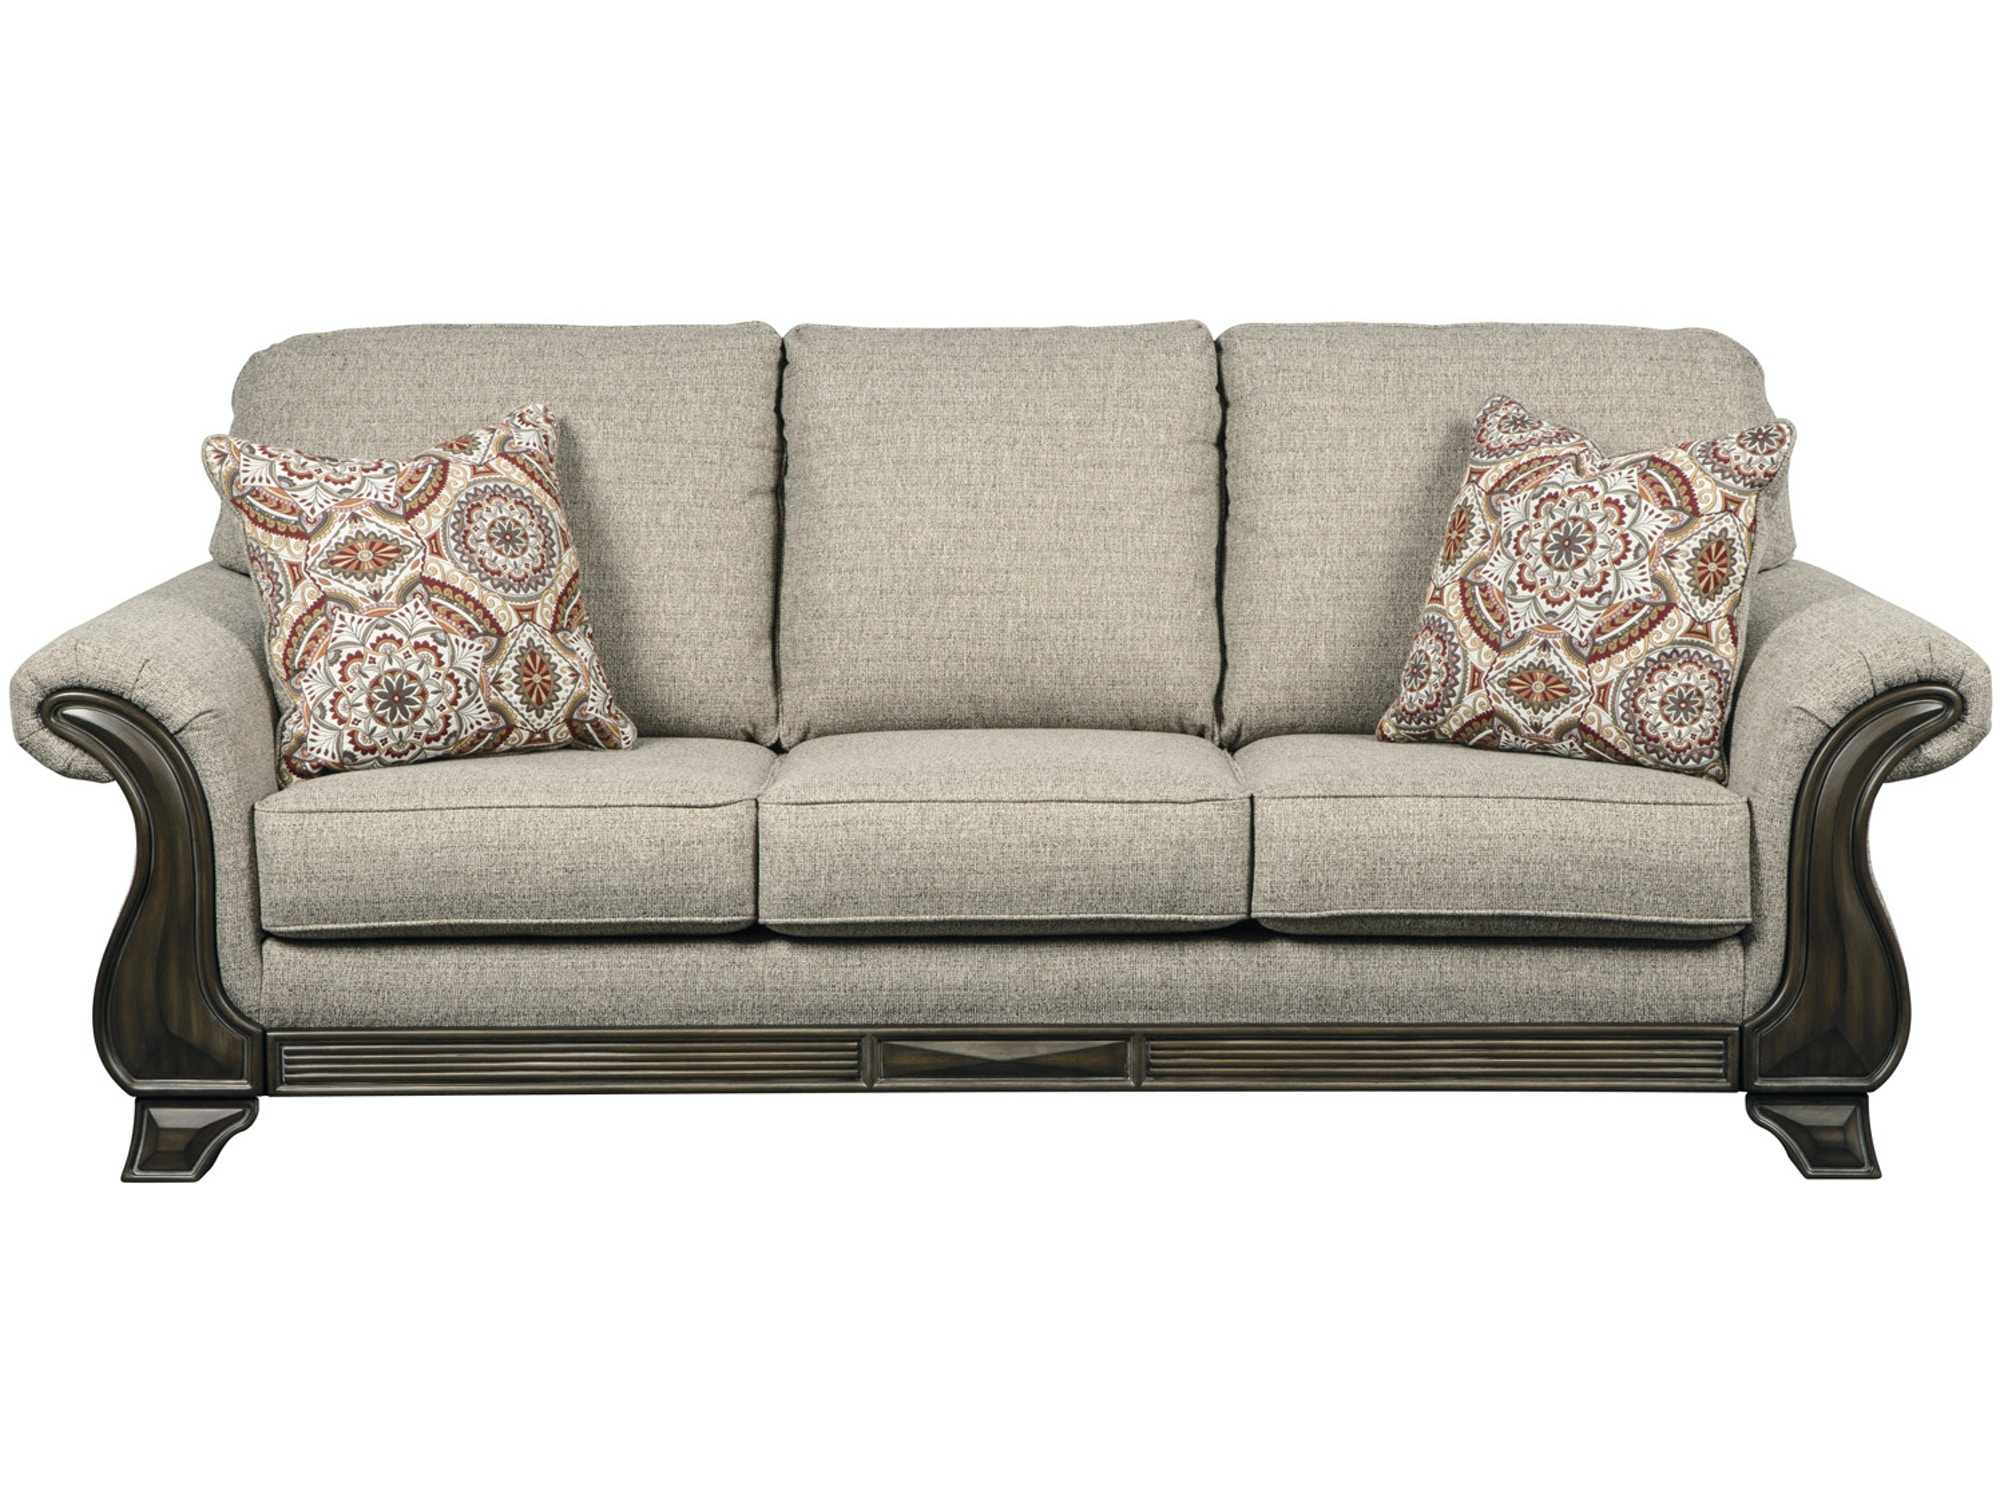 Living Room Sofas - Furniture Fair - Cincinnati & Dayton OH and ...